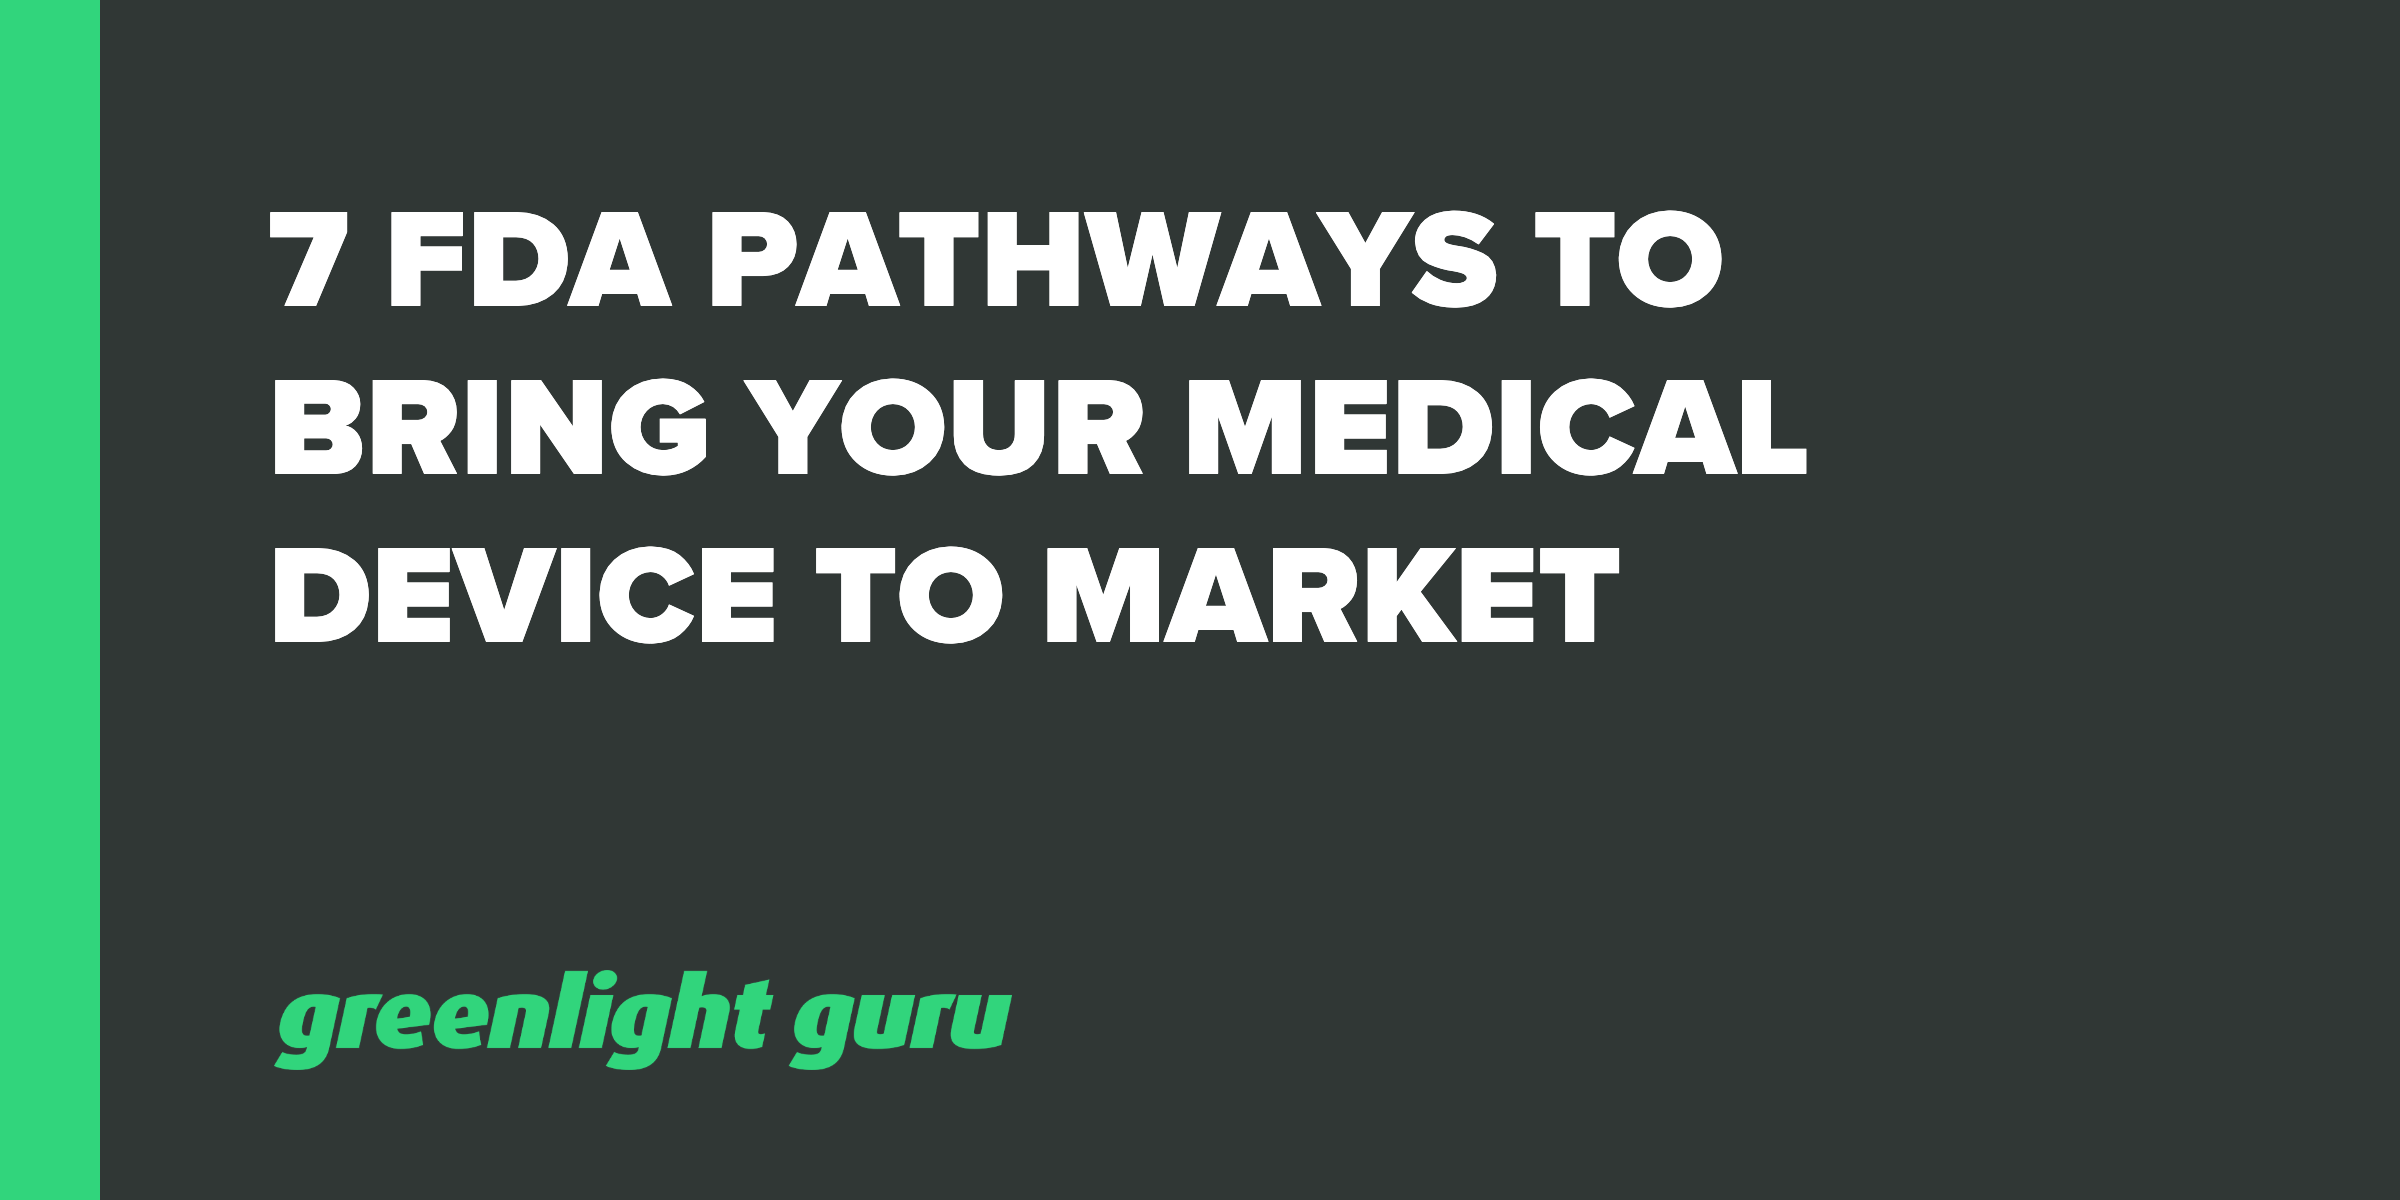 7 FDA pathways to bring your device to market